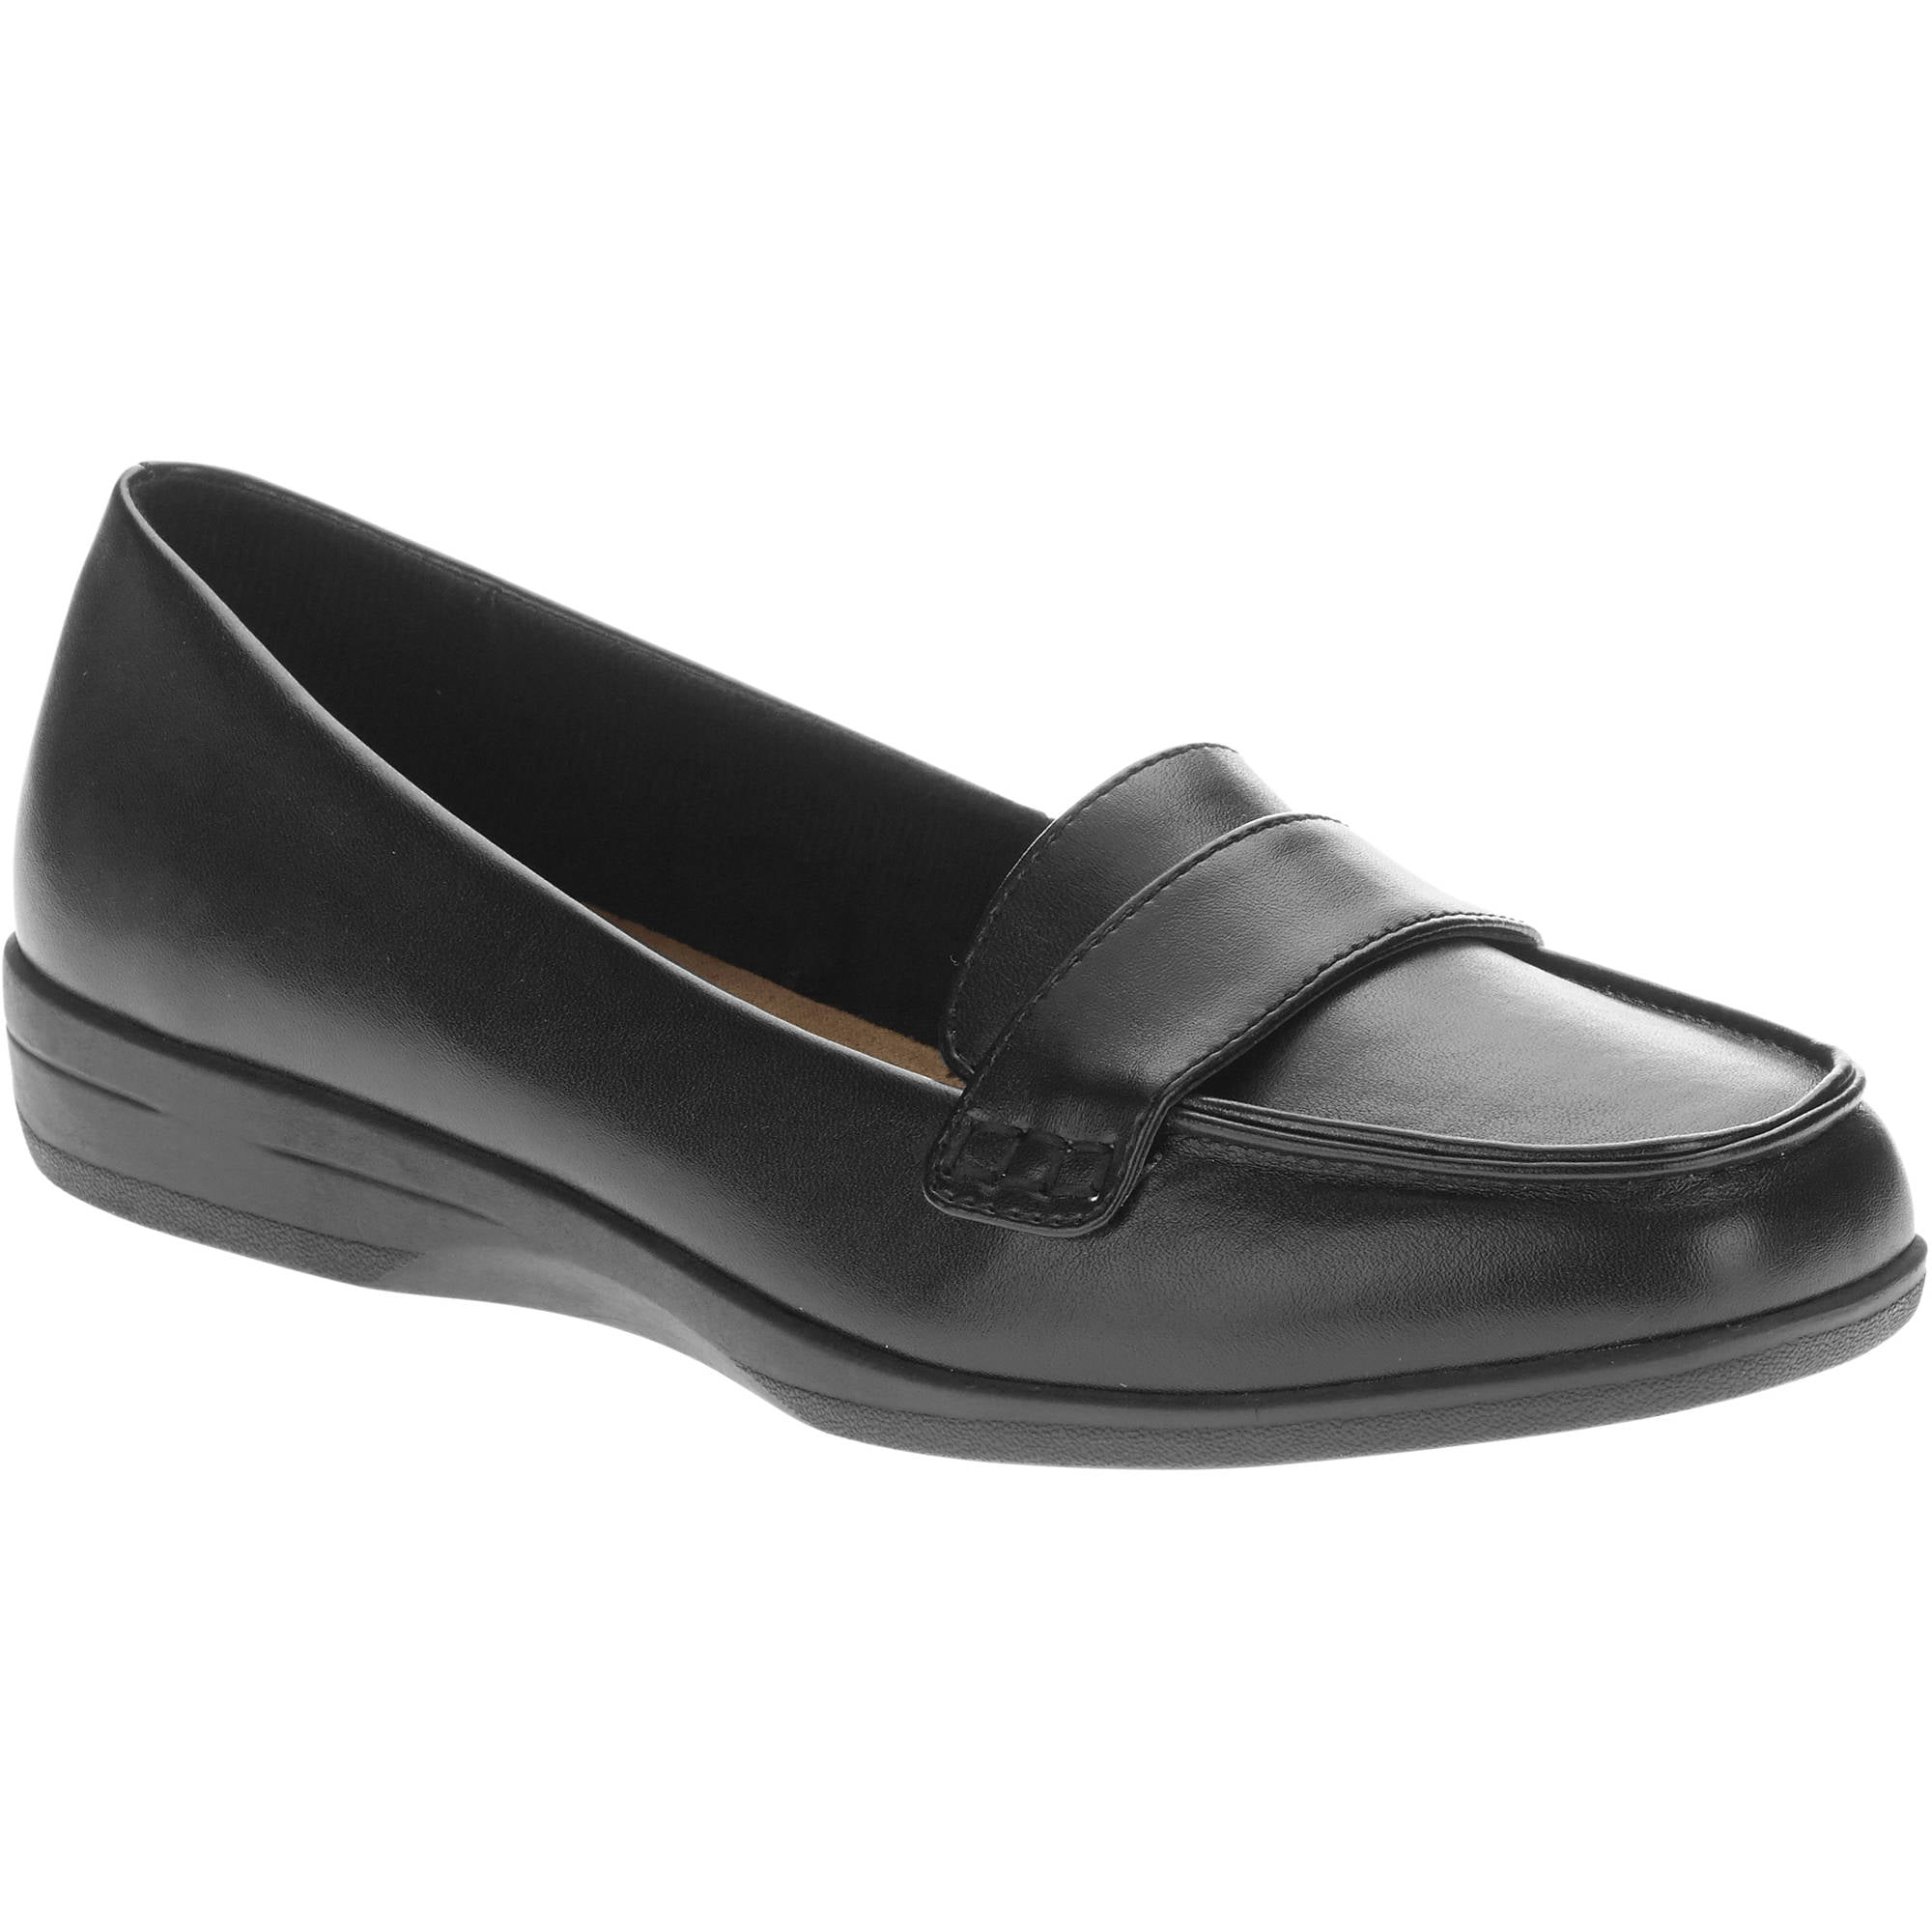 Women s Casual Slip-On Dress Shoe - Walmart.com c3da17b8ef